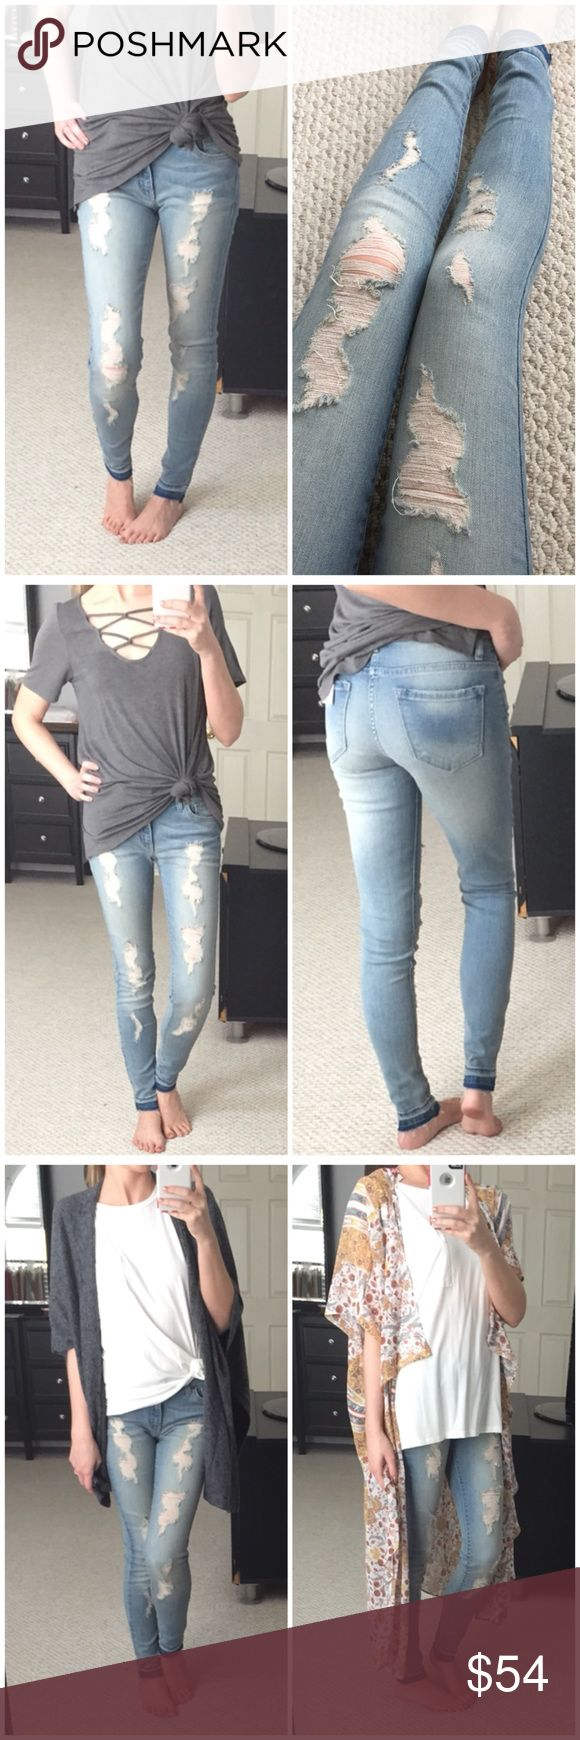 """▫️Light Wash Distressed Denim with Fray Hem Probably my favorite jeans yet! 😍 So stretchy & comfy! Light wash denim with distressed front and fun fray hem. Wonderful quality and so on trend! Perfect for the upcoming warmer months! Looks great with any white or grey top!  Might be able to get more sizes! Mid-rise. Modeling 1/24 and I'm a smaller 25. 73% cotton, 14% rayon, 11% polyester, 2% spandex.  Measurements: Waist: (1/24) 12.5"""" (3/25) 13"""" (7/27) 14"""" Hips: (1/24) 15.5"""" (3/25) 16"""" (7/27)…"""